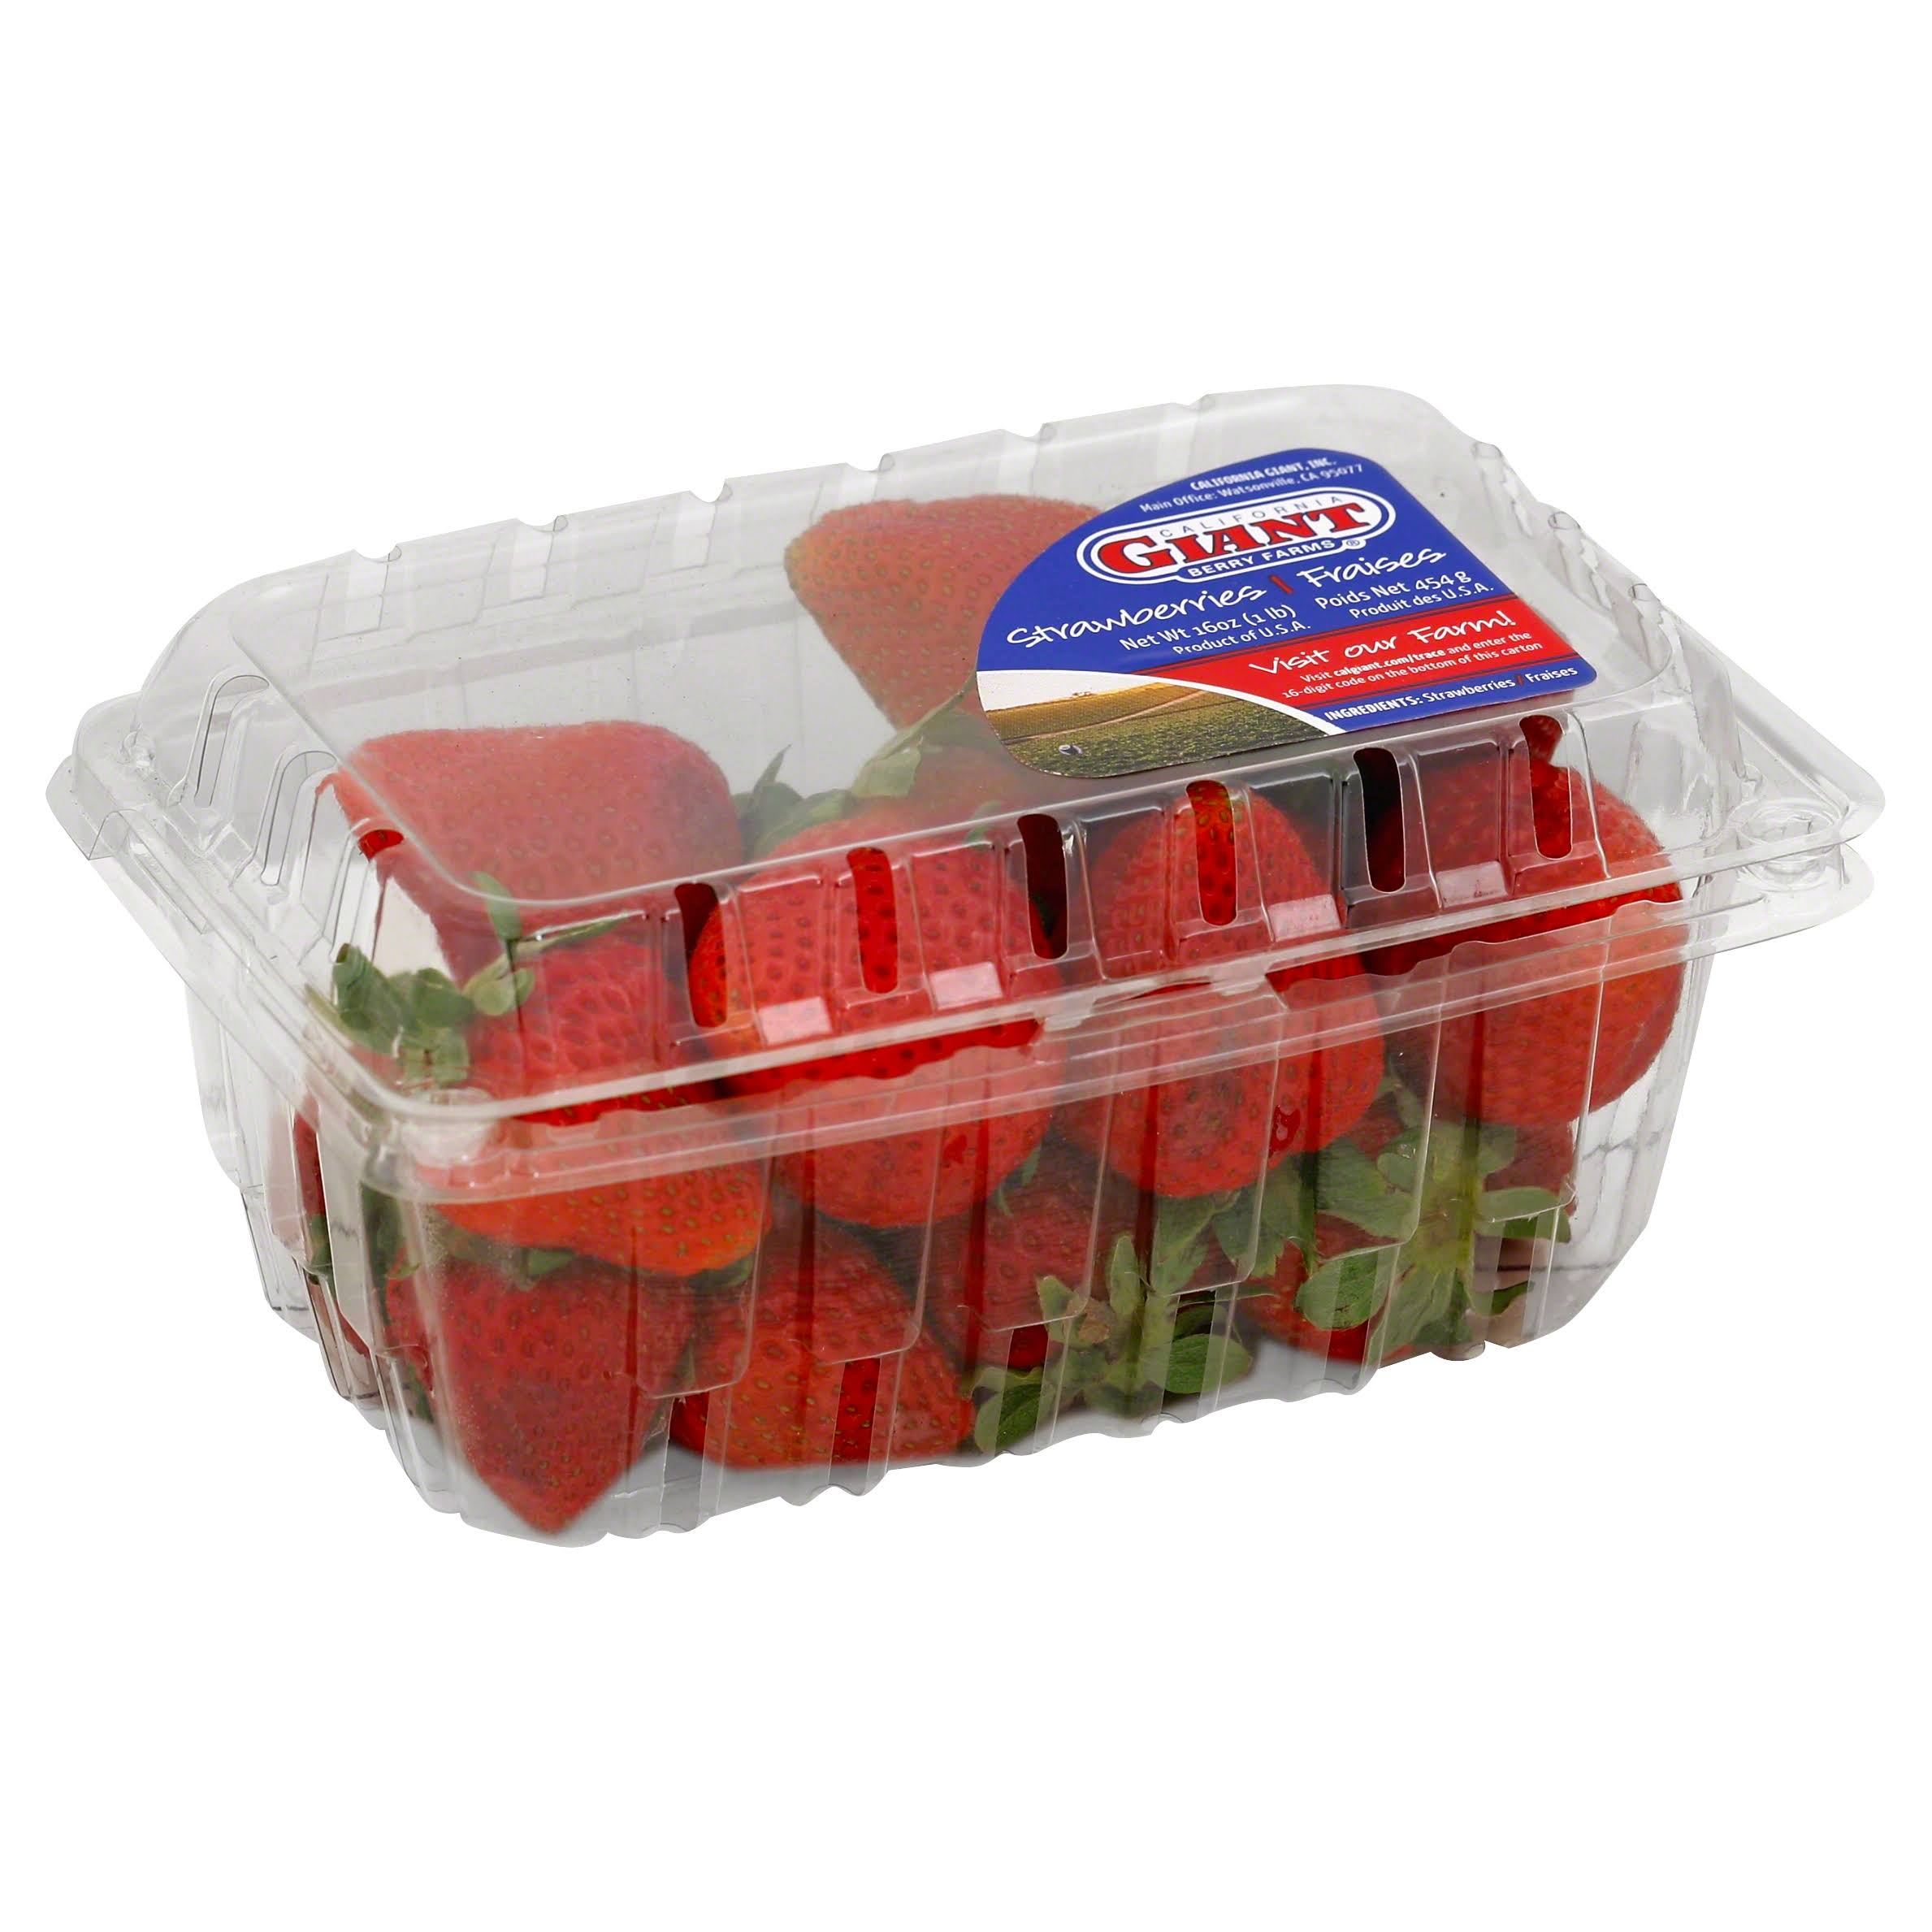 California Giant Berry Farms Strawberries - 16 oz